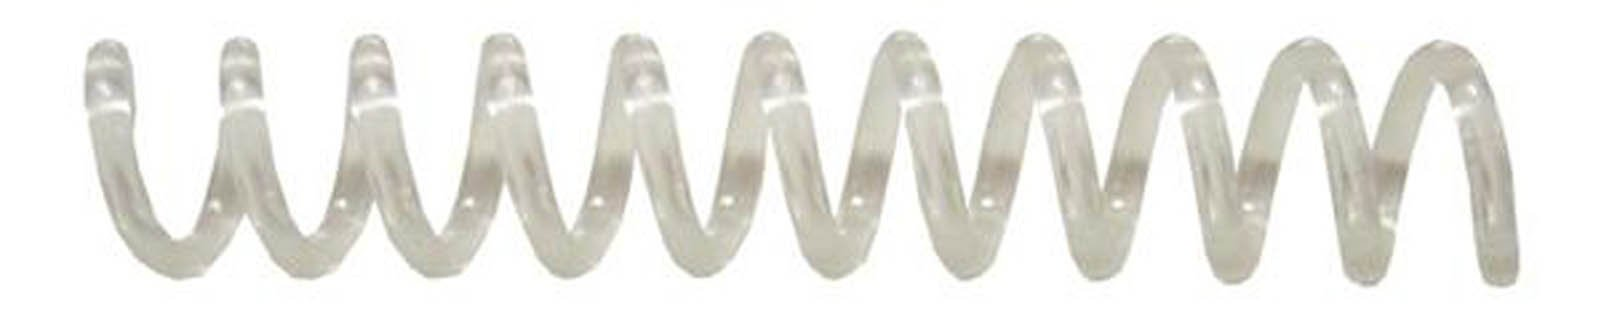 7mm (9/32) Clear Coil Bindings (Qty 100) Color: Clear, Model: , Office Shop